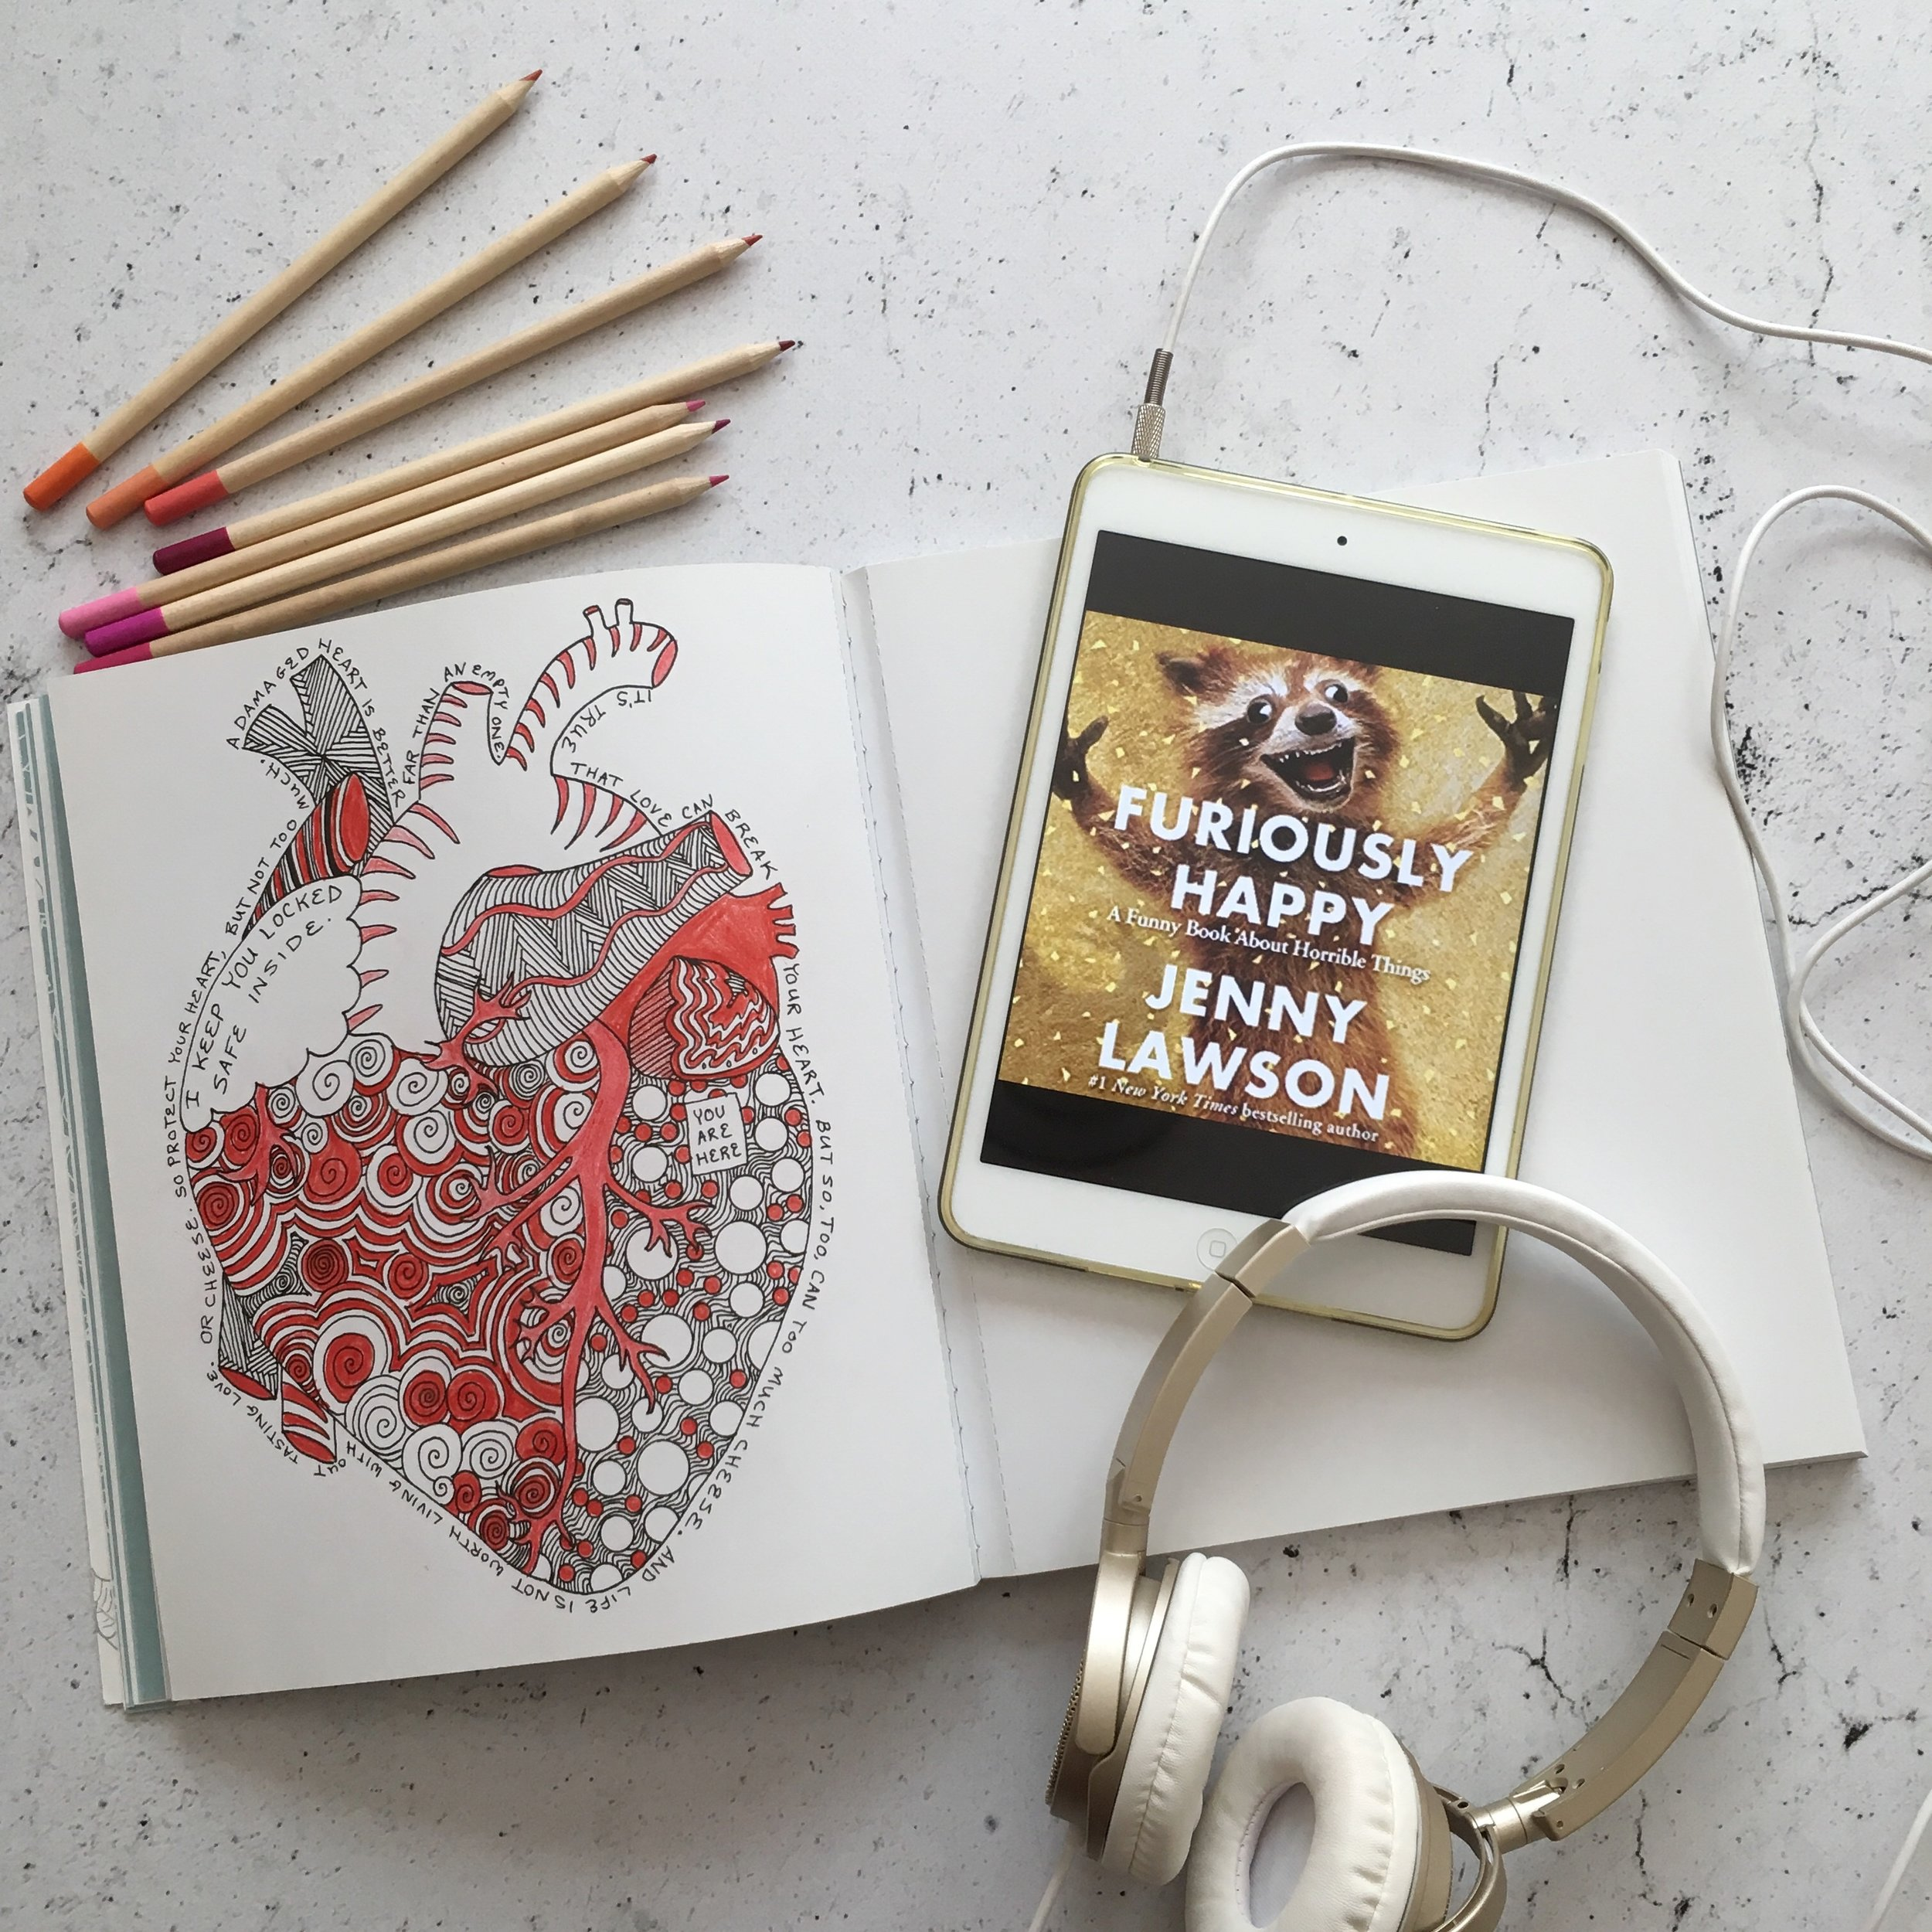 Audiobook:  Furiously Happy: A Funny Book About Horrible Things by Jenny Lawson   Coloring book:  You Are Here: Owners Manual for Dangerous Minds by Jenny Lawson